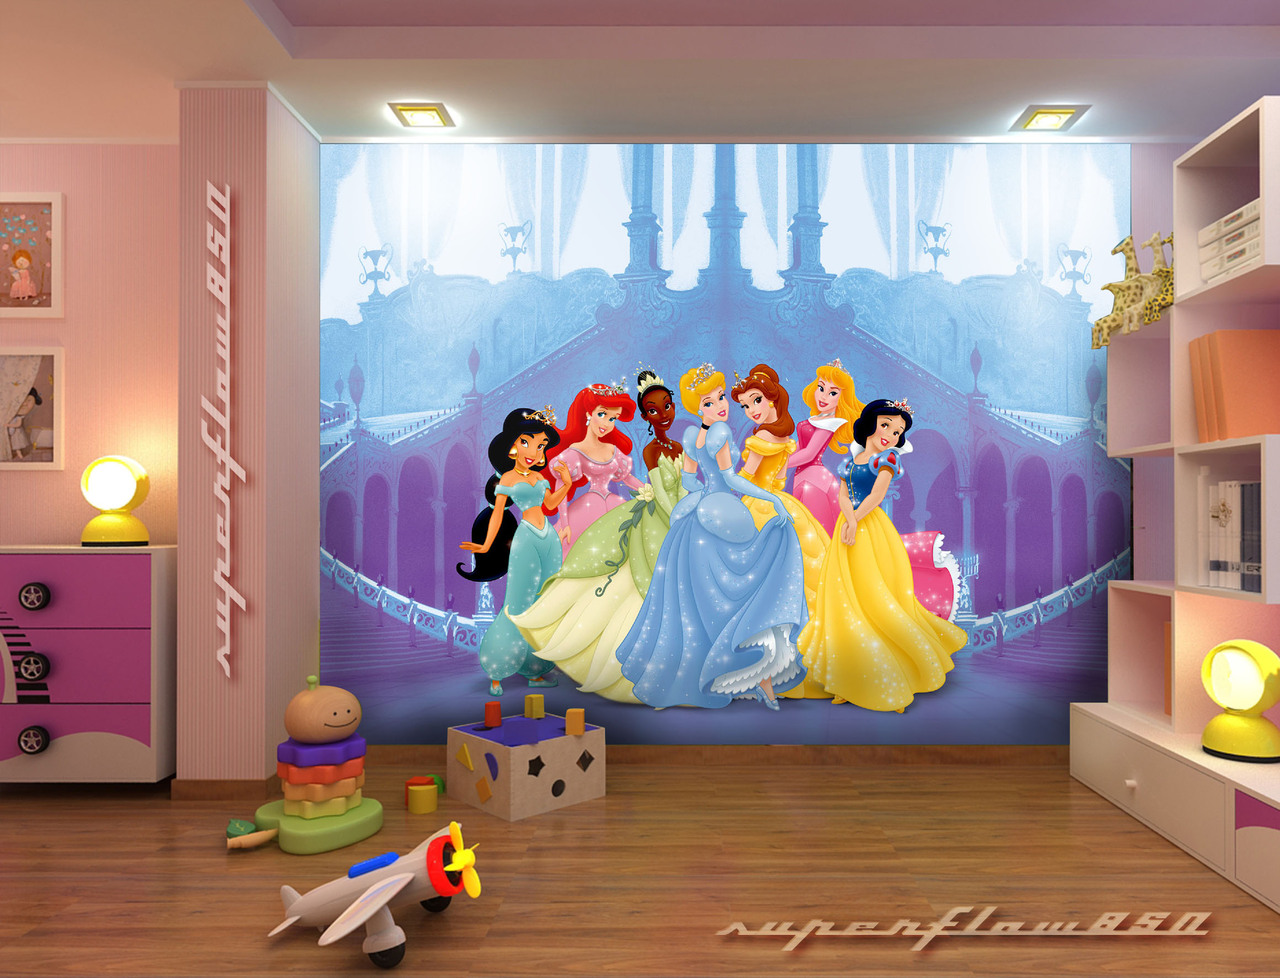 childrens disney wallpaper murals just for sharing